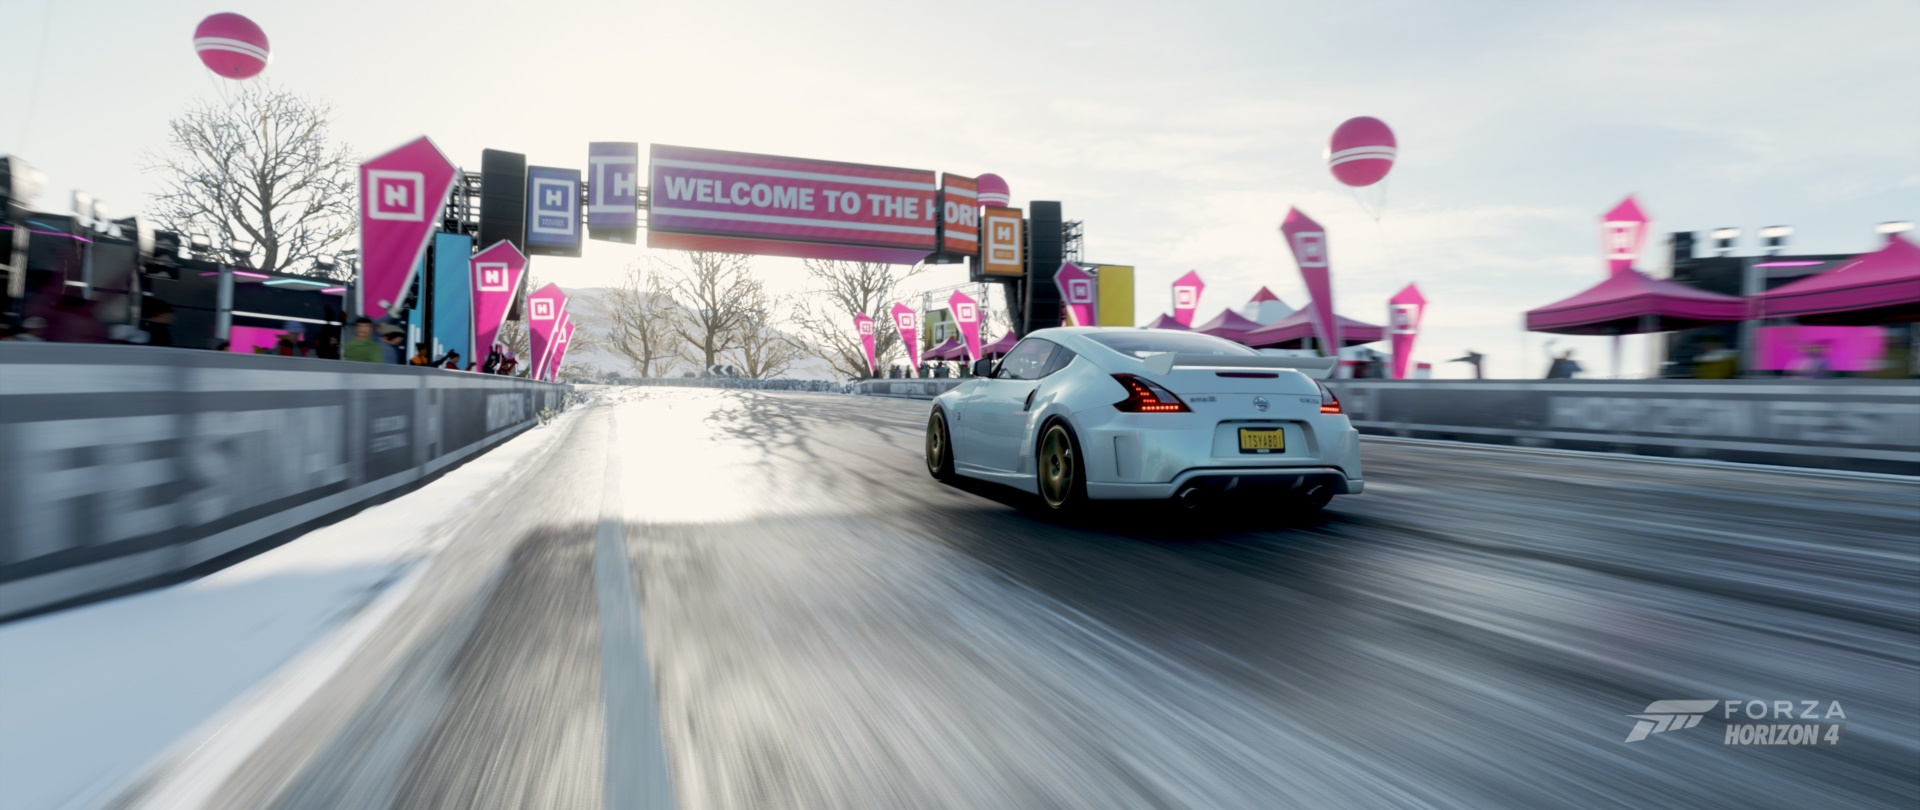 Forza Horizon 4 Review: Putting the pedal to the floor - Main Menu